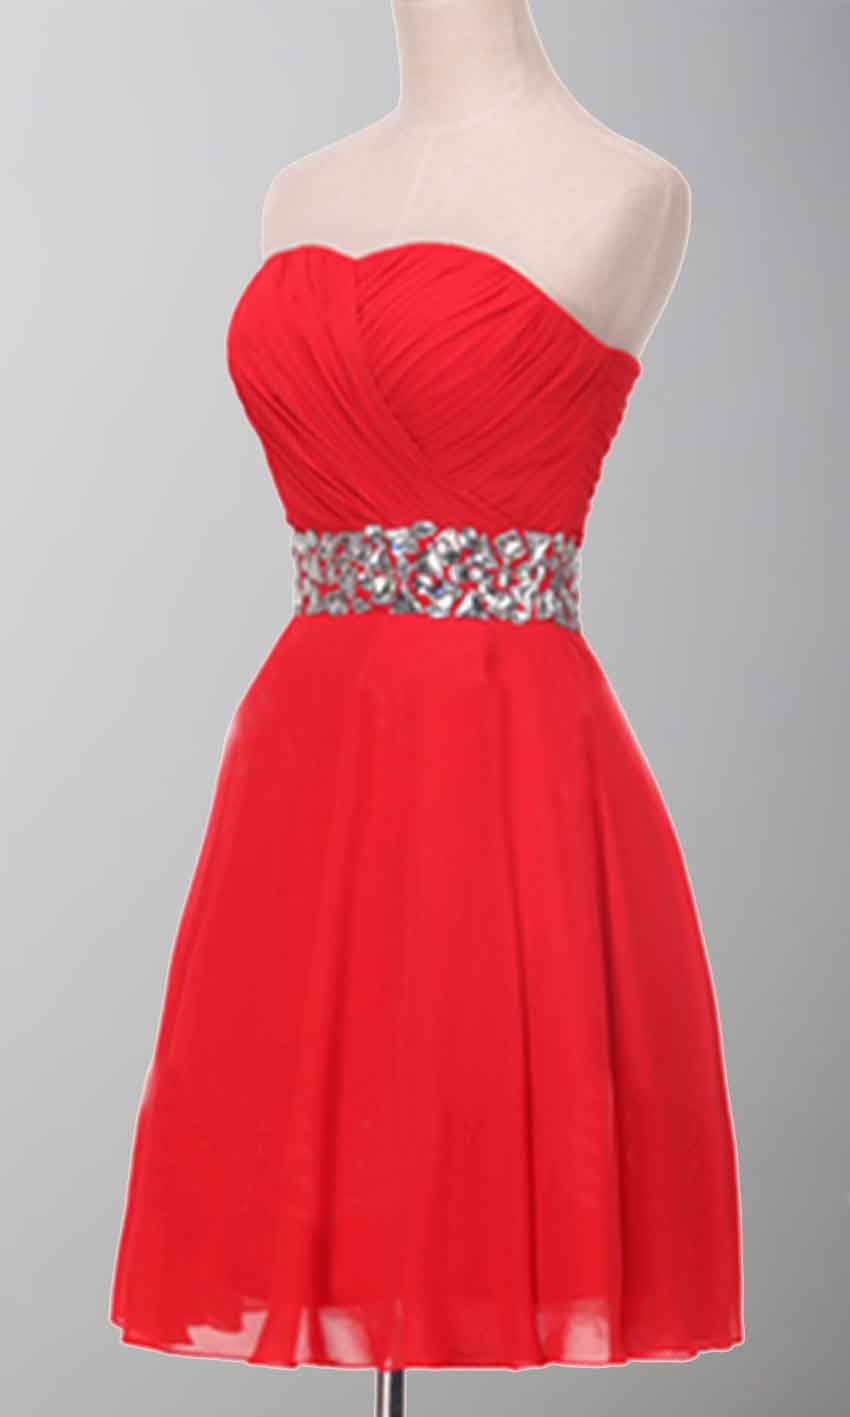 Sparkle Red Strapless Crystal Belt Short Prom Dress Ksp365